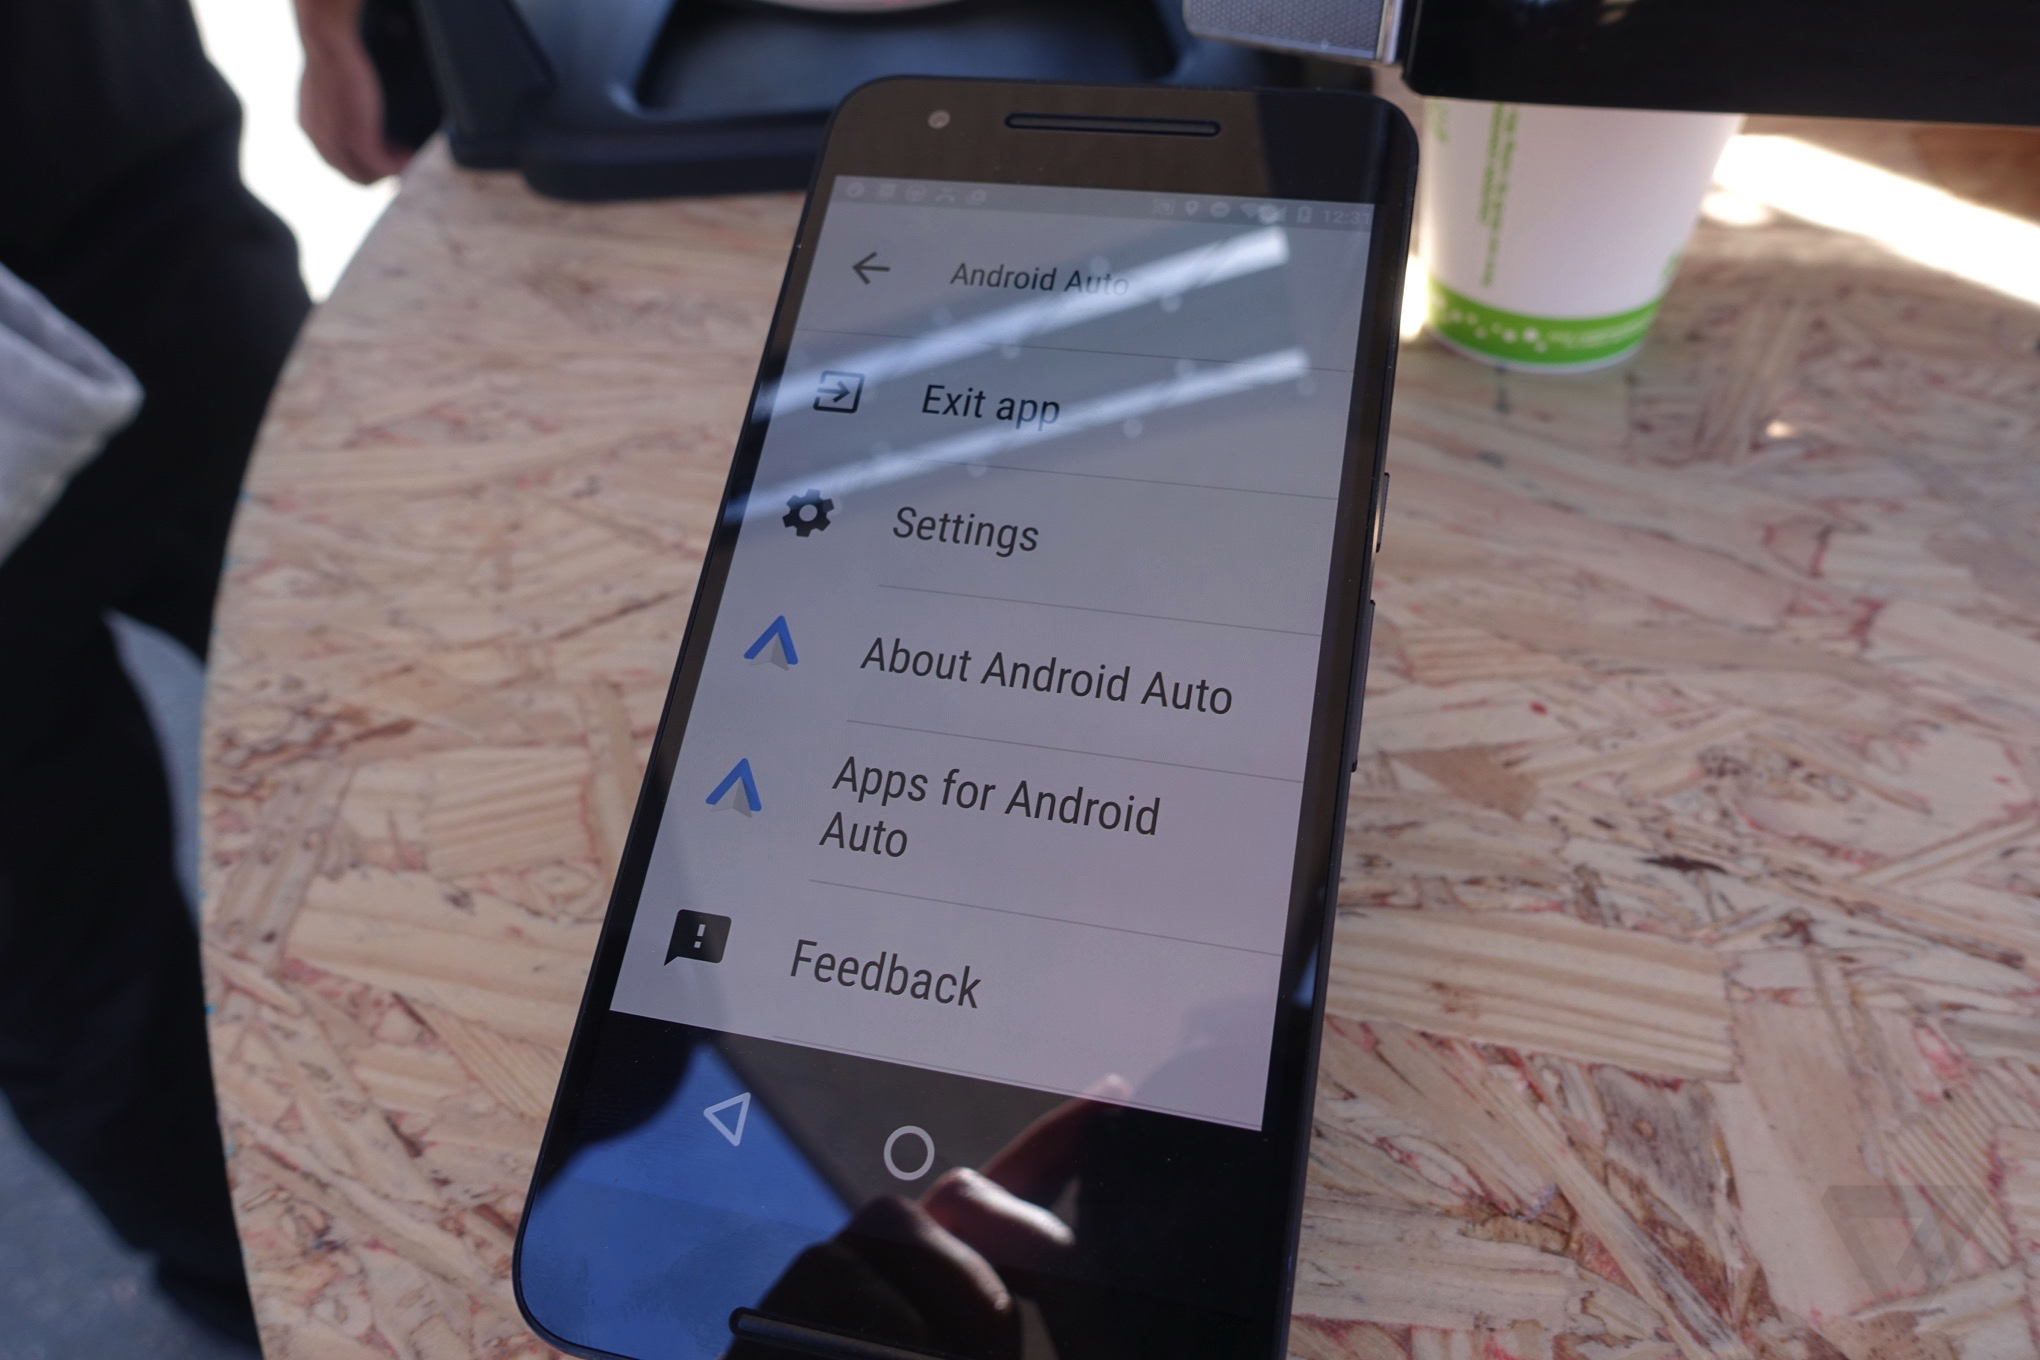 You don't need an Android Auto-compatible car to use Android